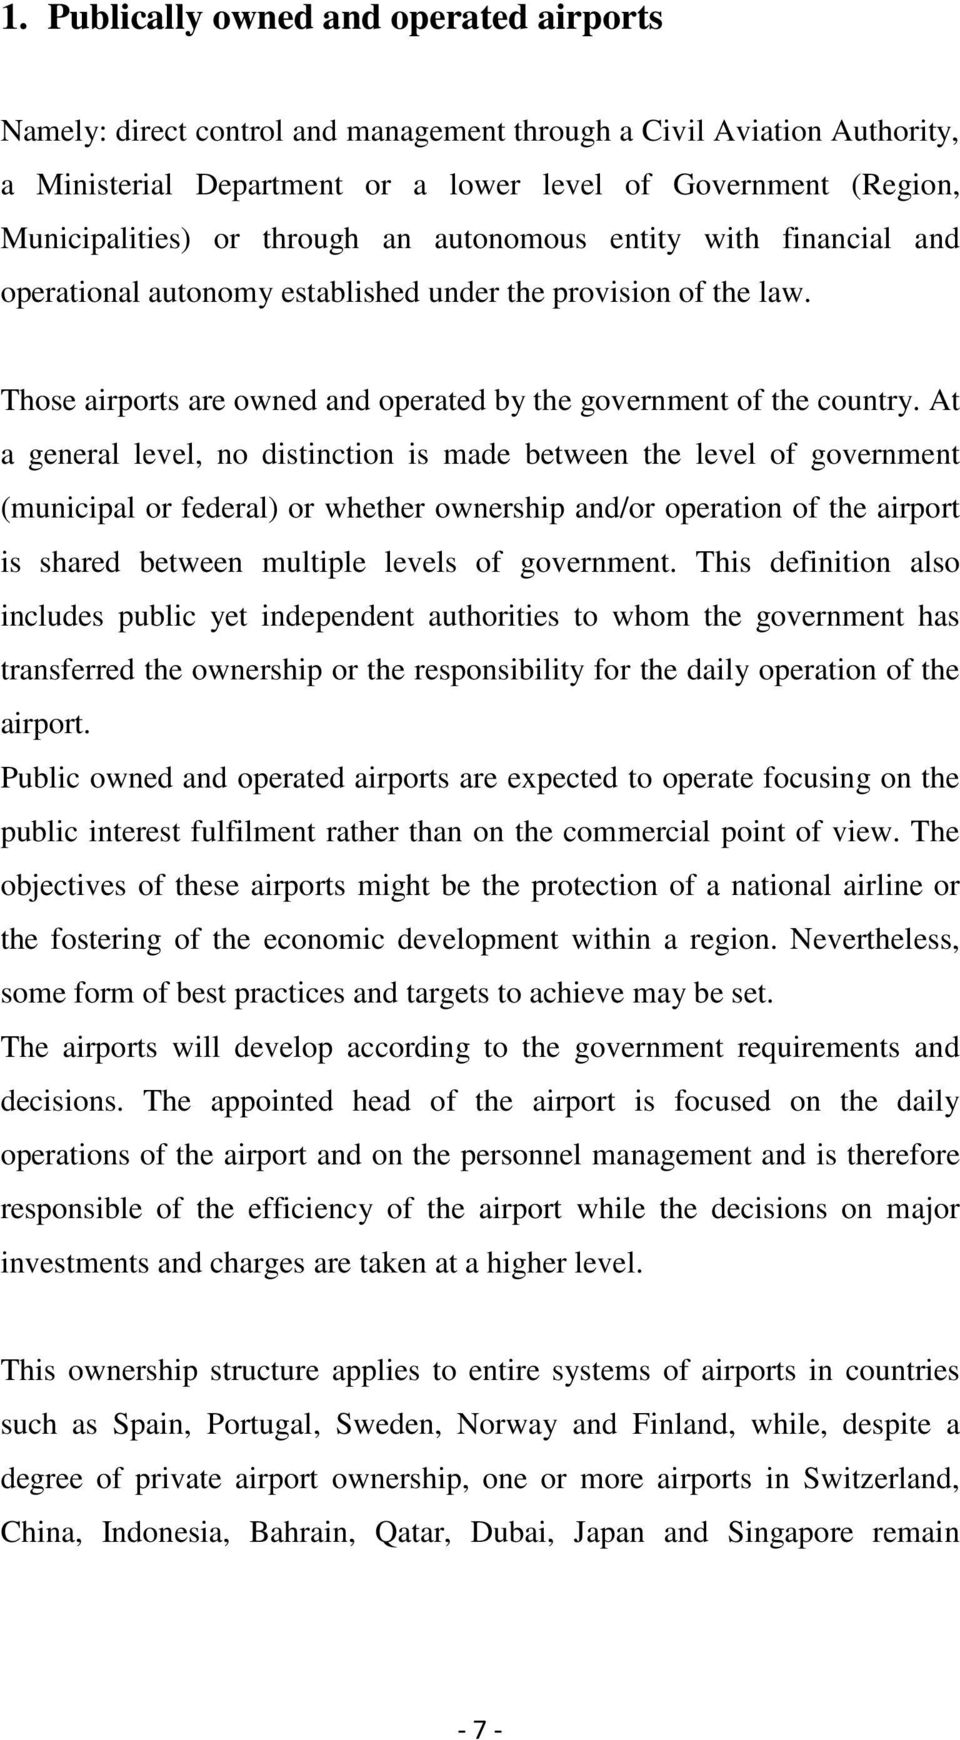 At a general level, no distinction is made between the level of government (municipal or federal) or whether ownership and/or operation of the airport is shared between multiple levels of government.